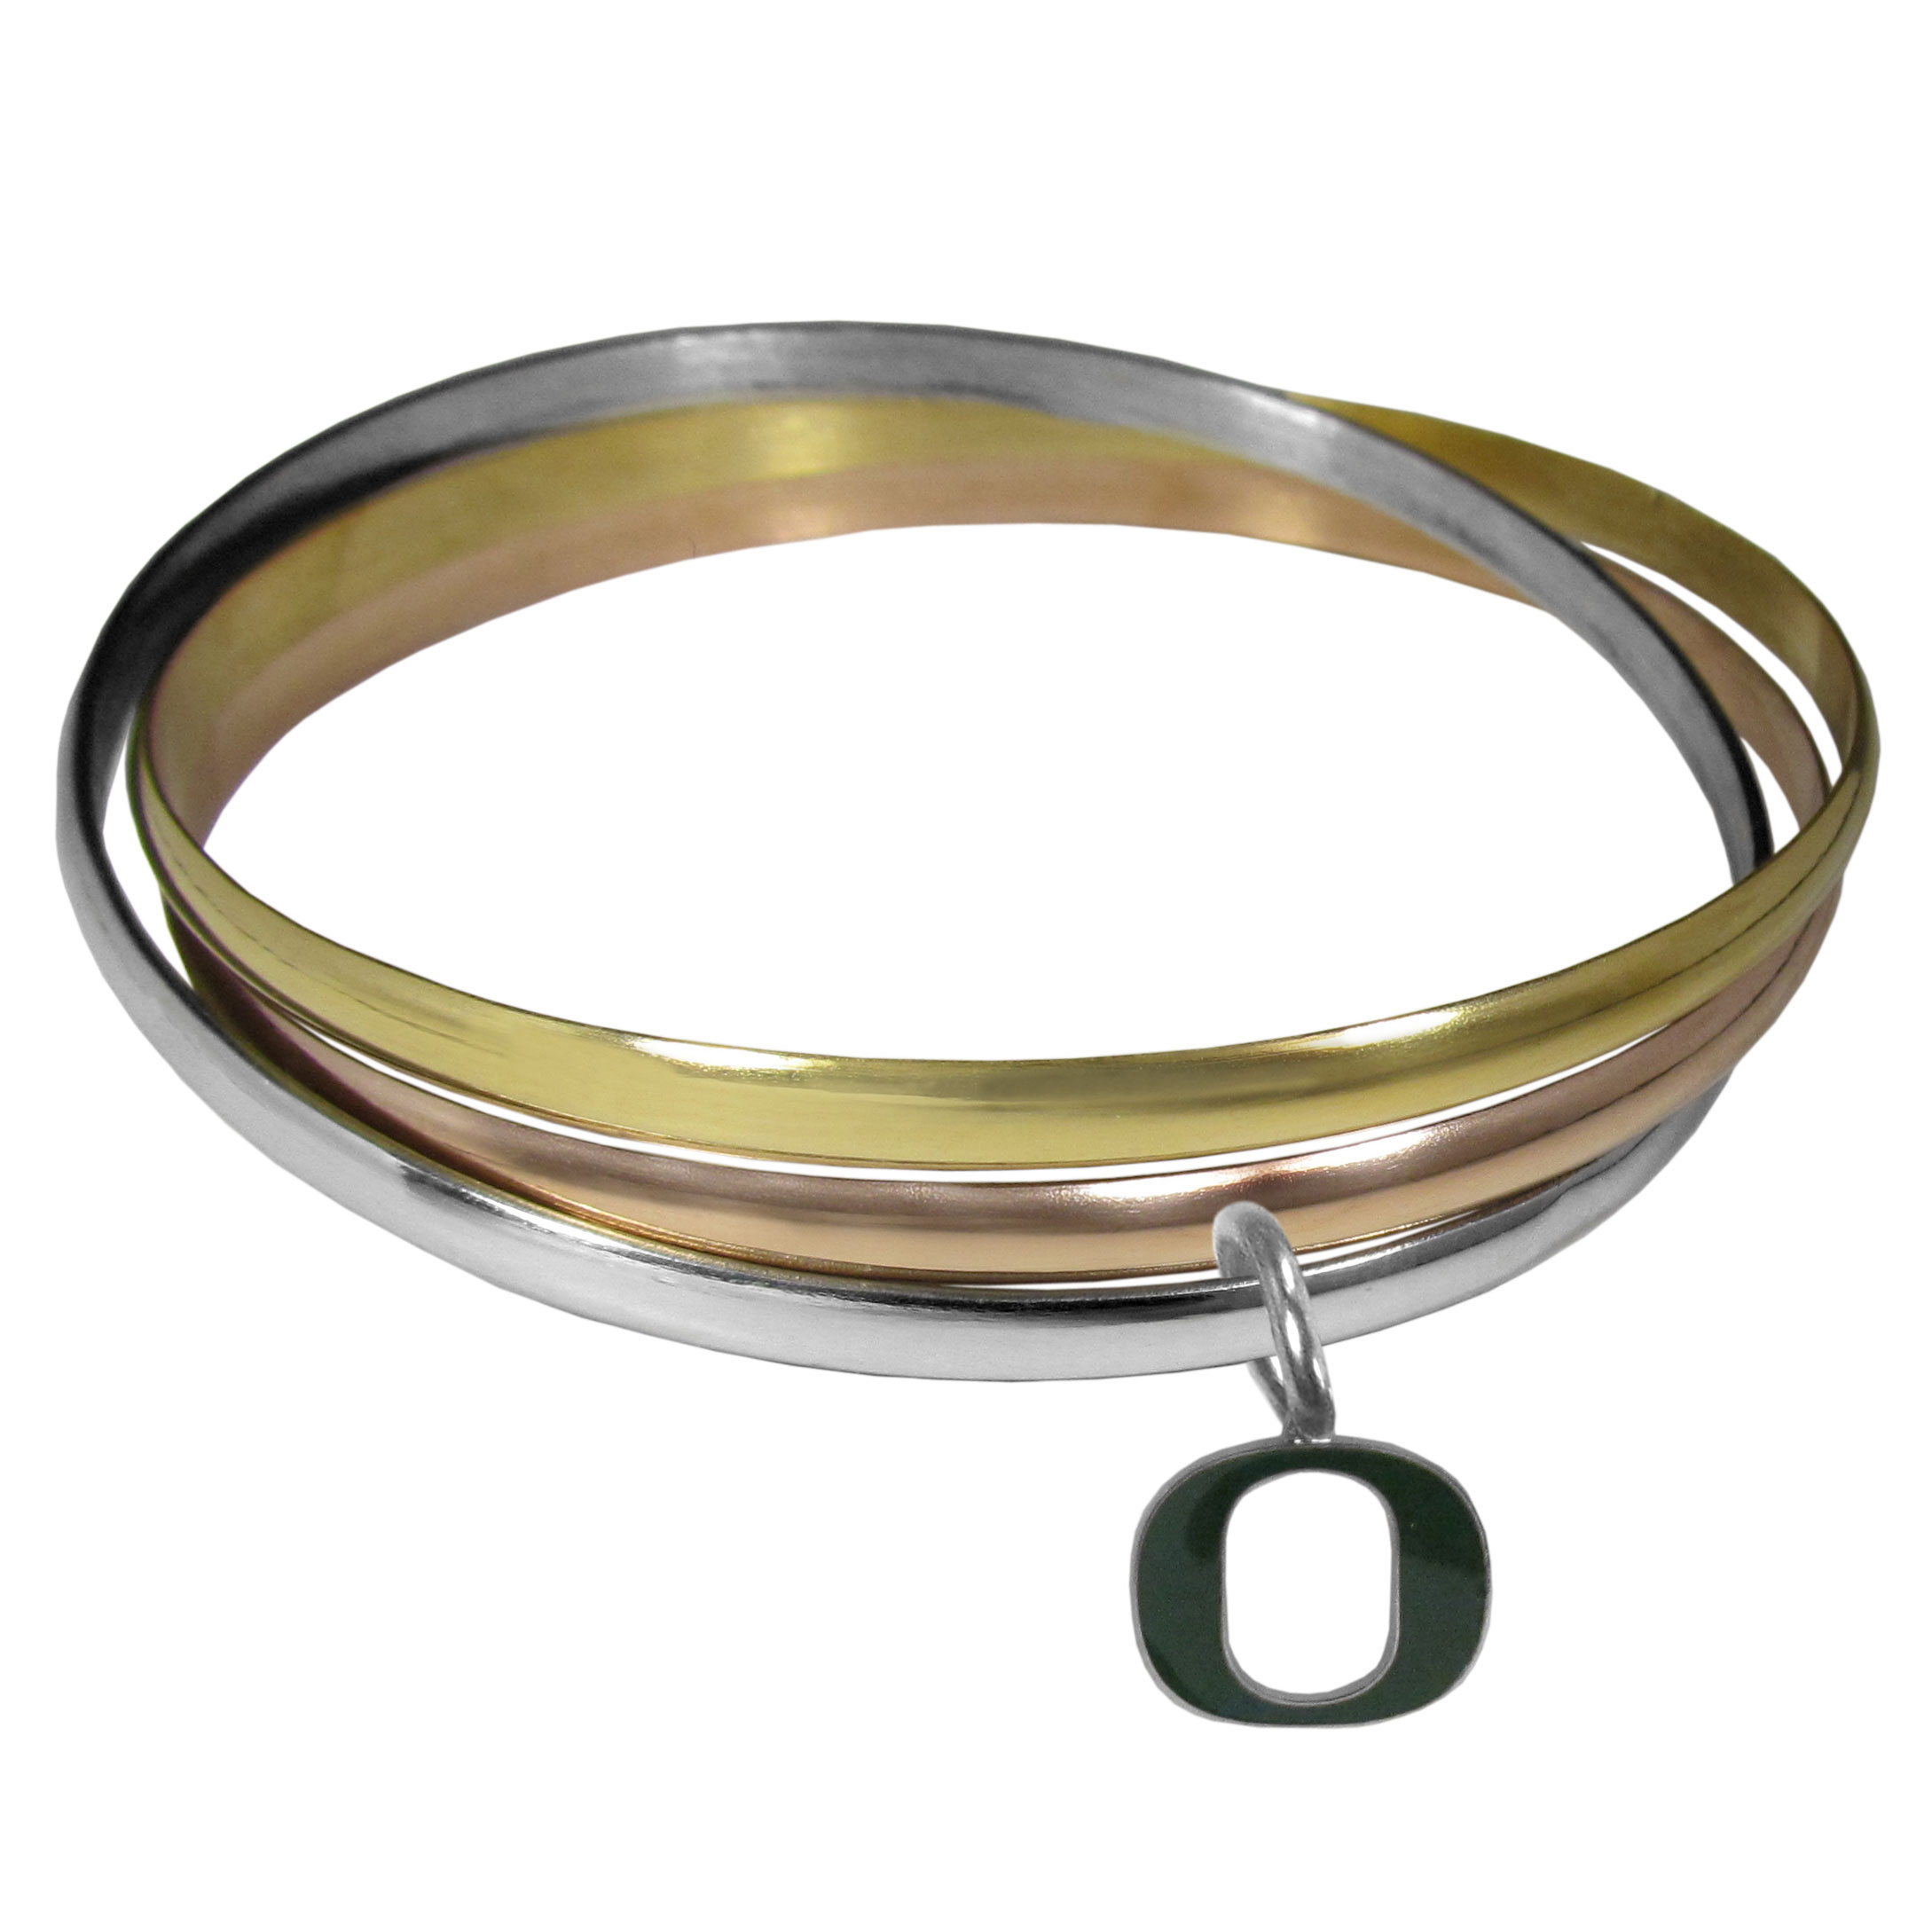 Oregon Ducks Tri-color Bangle Bracelet - These beautiful bangles come in a interlocking style and feature a fully cast Oregon Ducks charm with enameled team colors. The bracelet has a silver toned bangle, gold tone bangle and brass toned bangle.